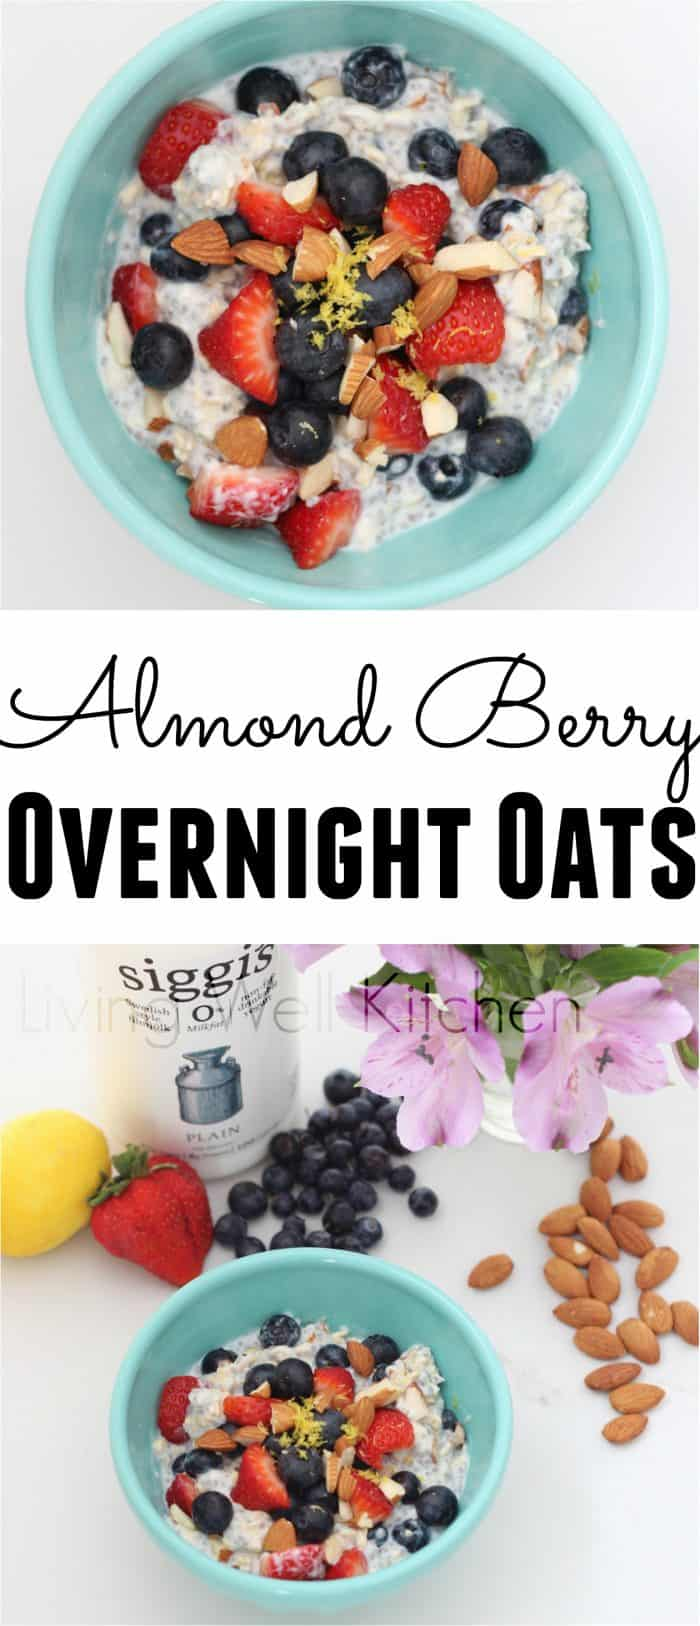 Use filmjölk for a protein packed, probiotic-filled take on overnight oats. Adding almonds and berries adds fiber and deliciousness. Almond Berry Overnight Oats recipe from @memeinge